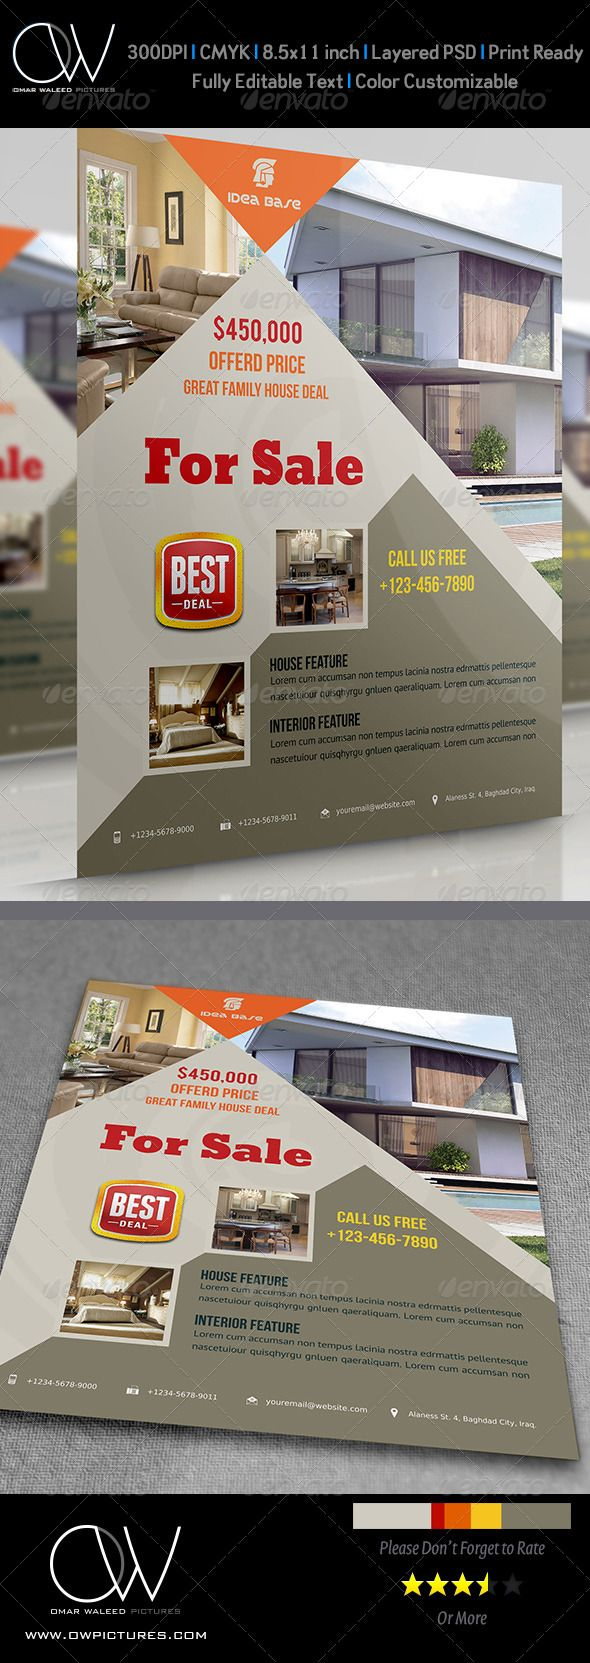 62 best Business cards images on Pinterest | Fonts, Business cards ...